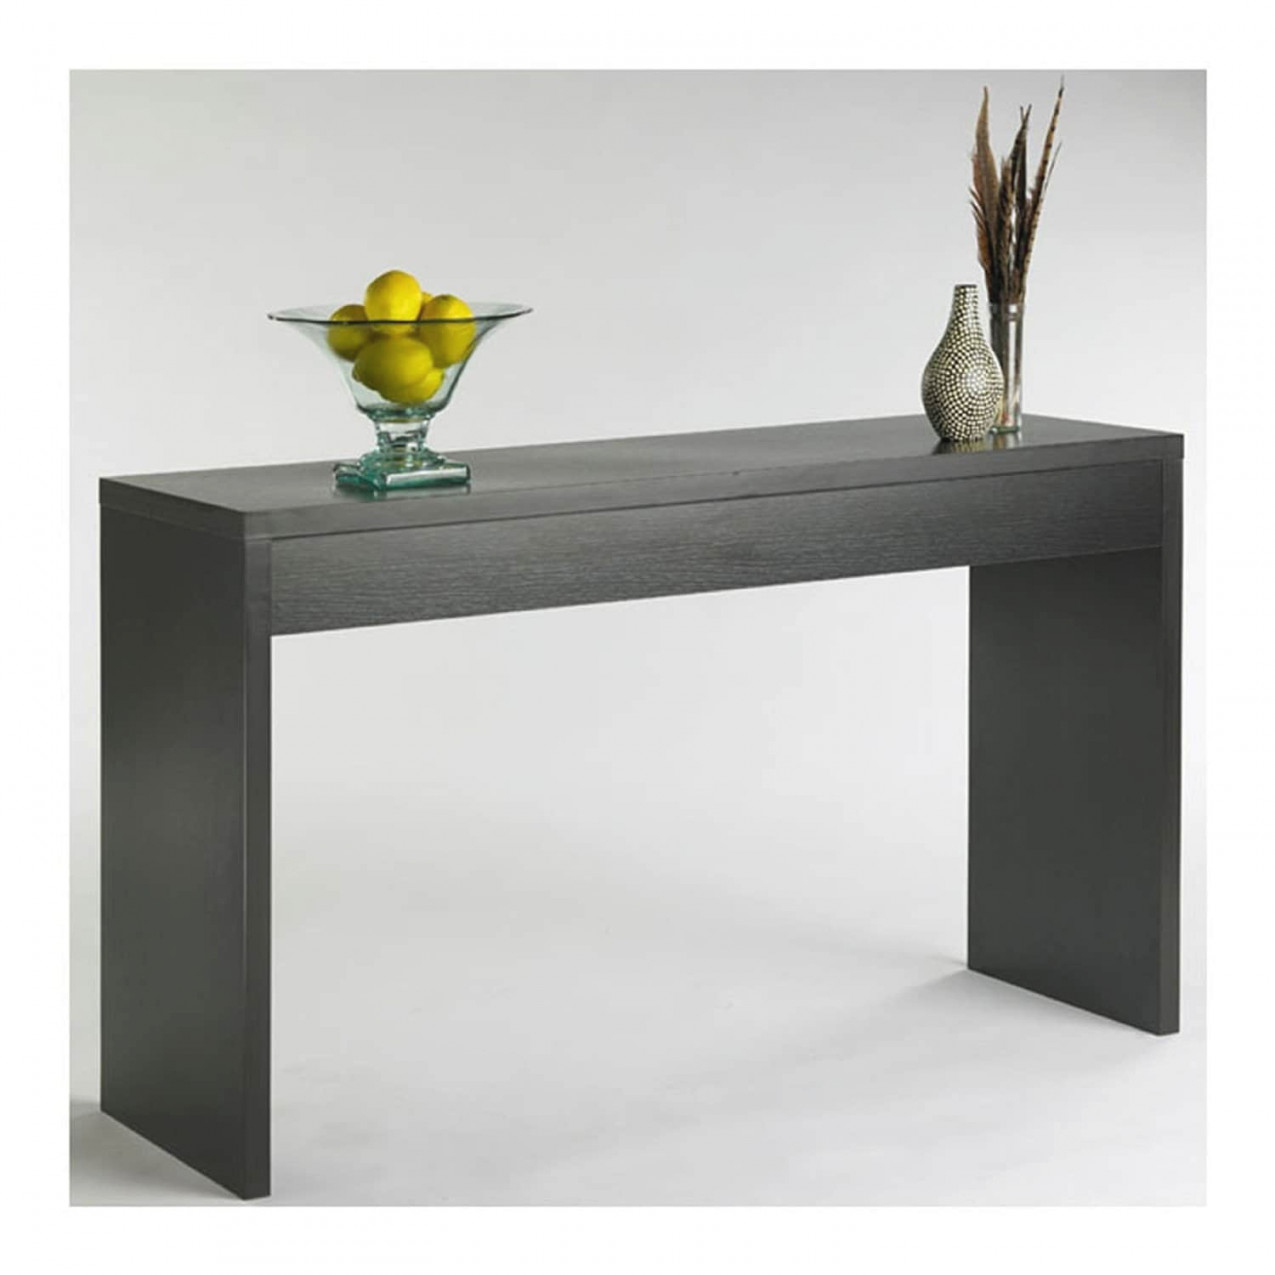 Contemporary Living Room Console Wall / Sofa Table In Espresso - Pictured in 14+ Inspiration Gallery For Wall Tables For Living Room